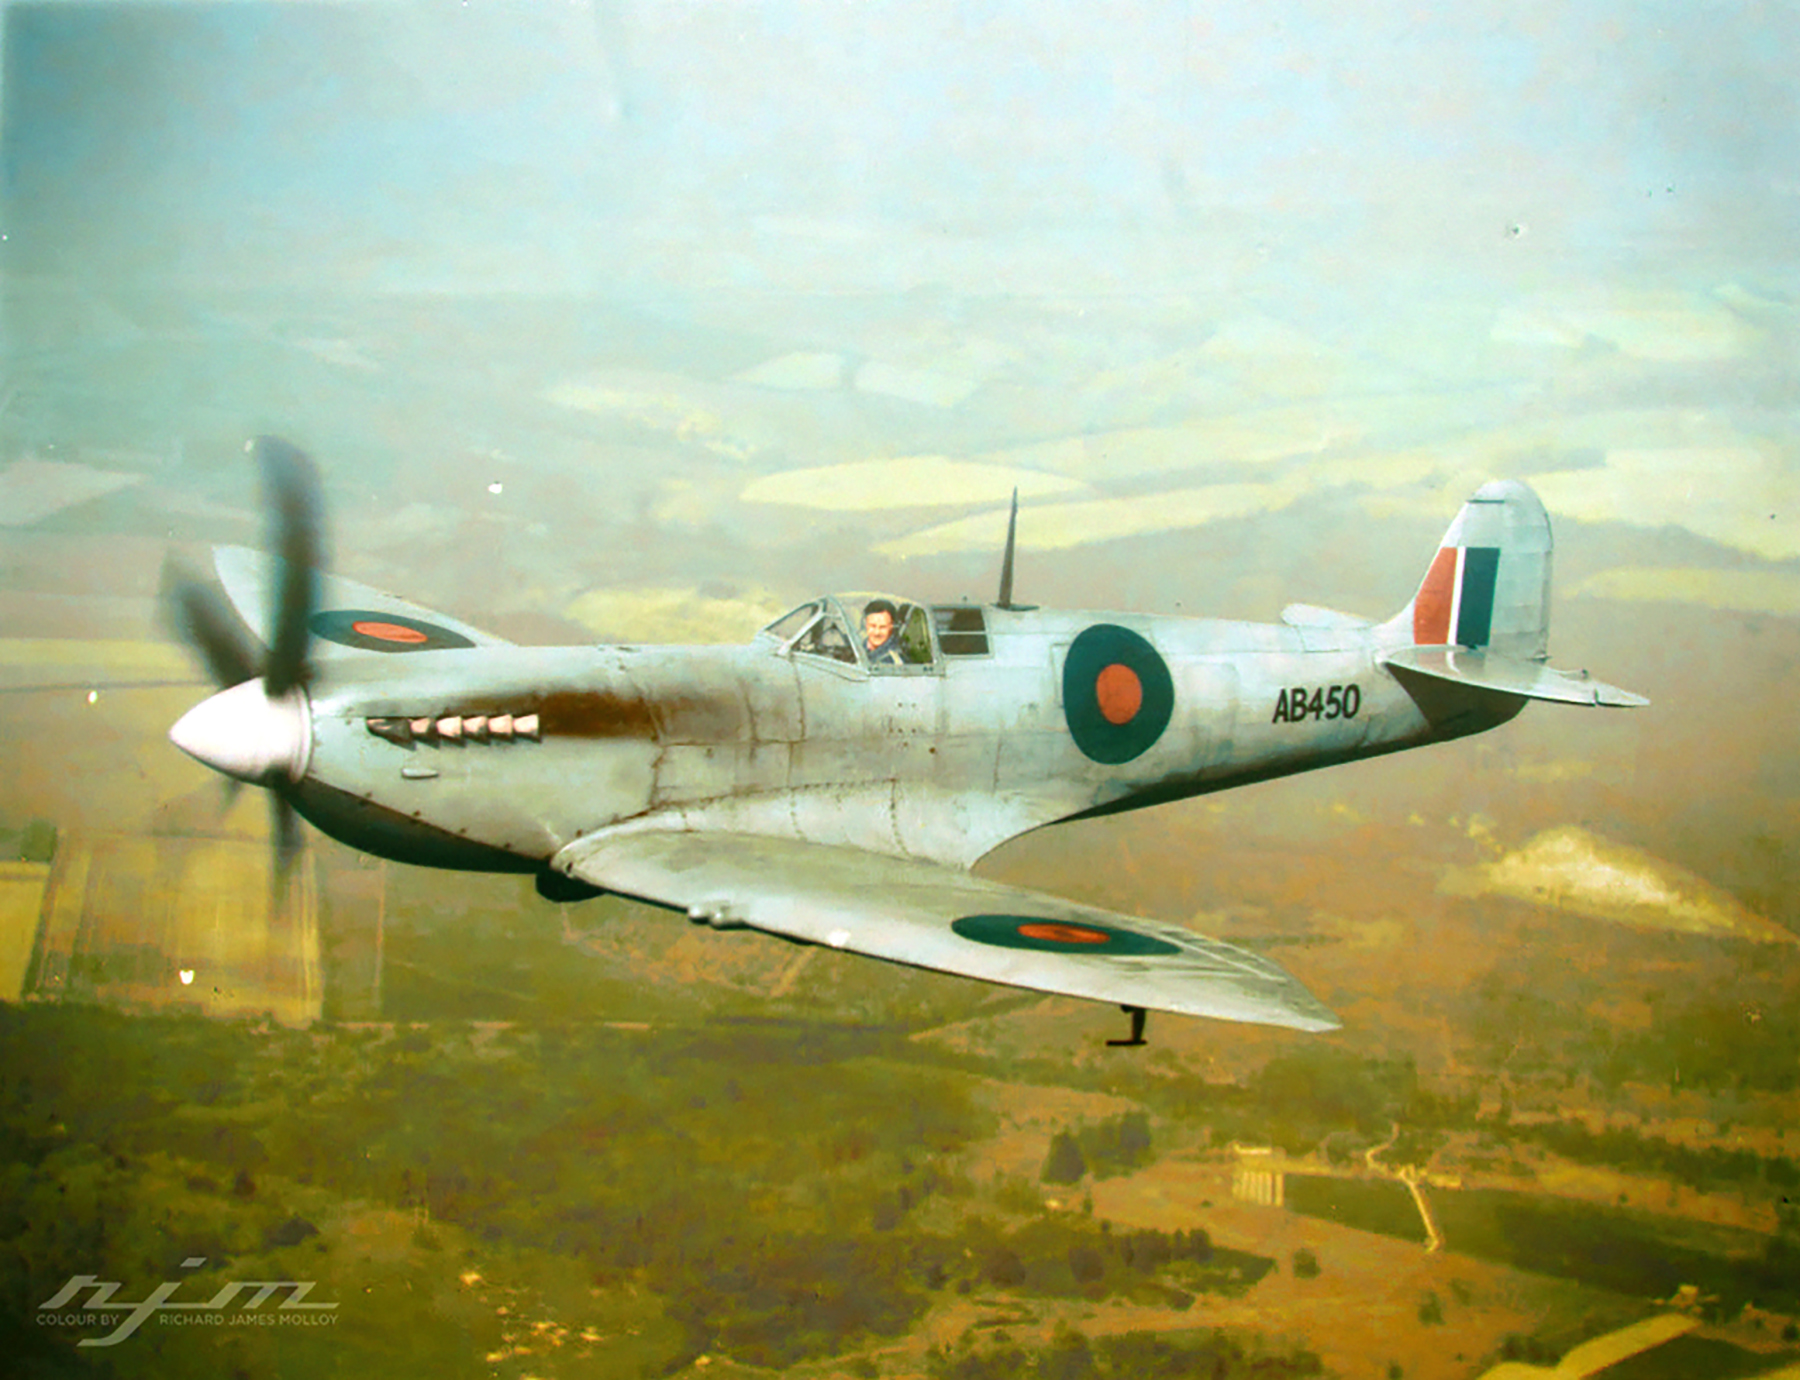 Spitfire VII prototype converted from a Spitfire V AB450 and later served with the Special Service